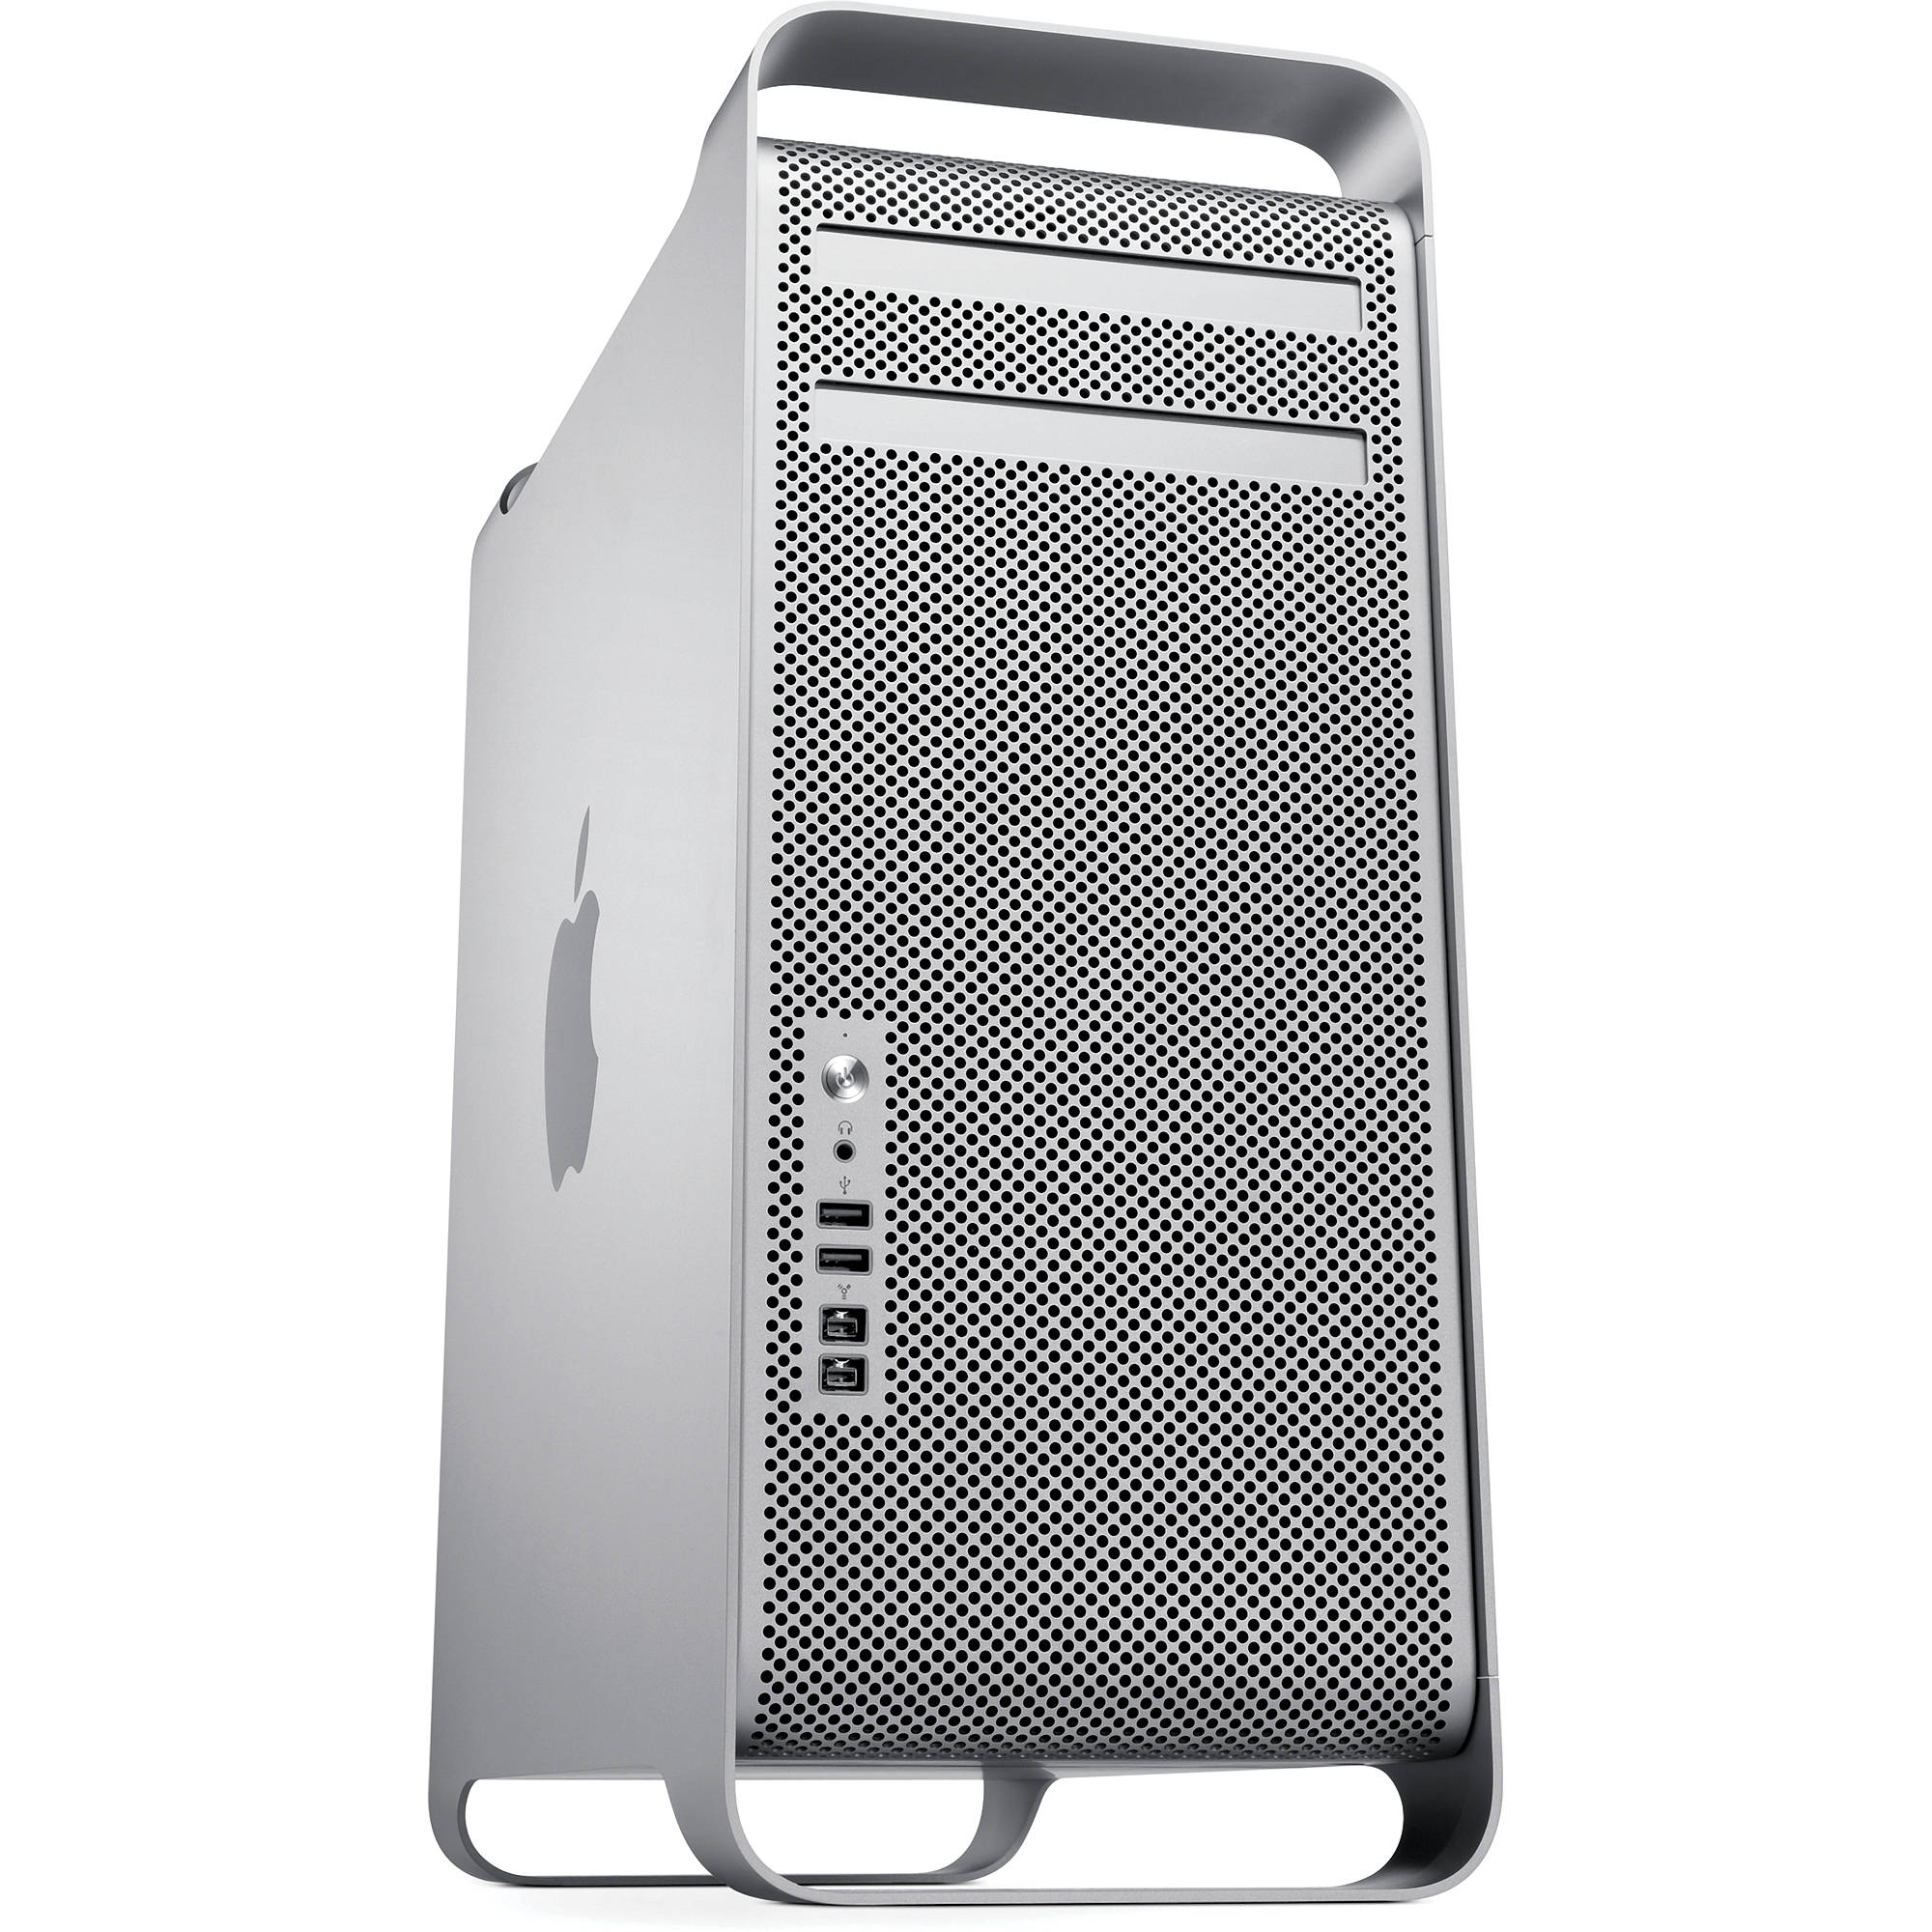 Apple Mac Desktop Computers Apple Mac Pro 12-core Desktop